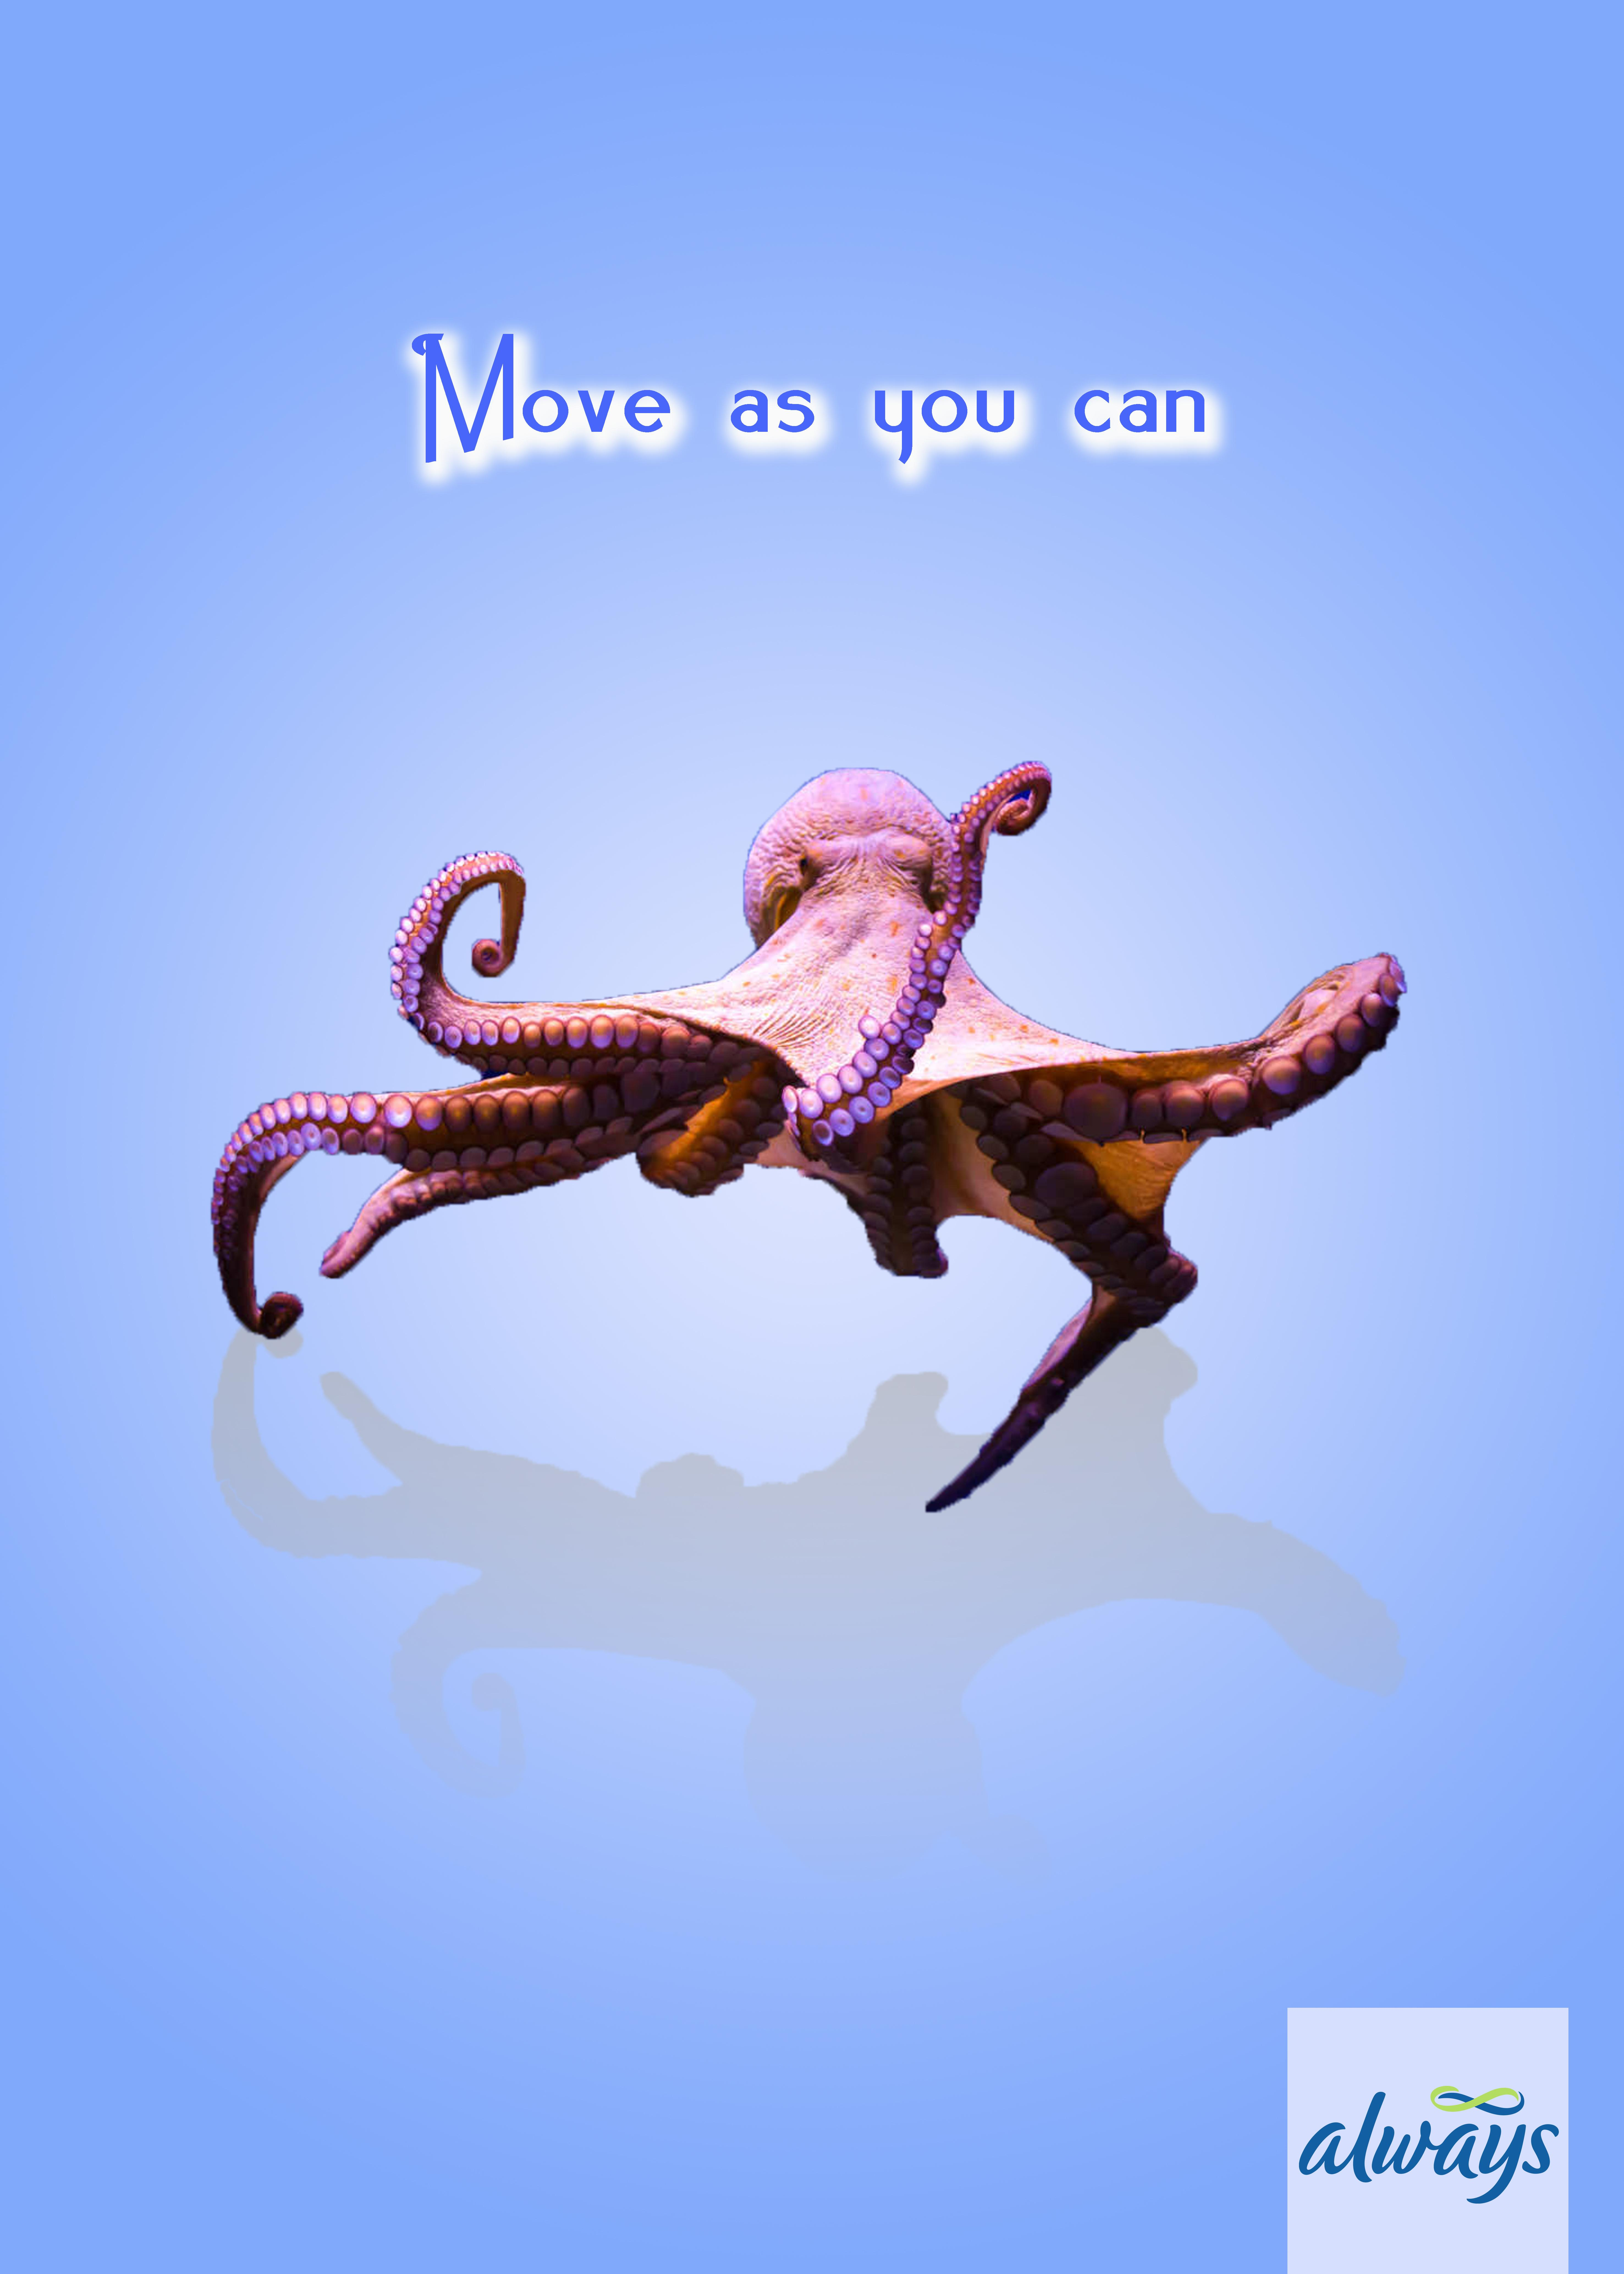 Always Print Ad - Move as You Can, 4